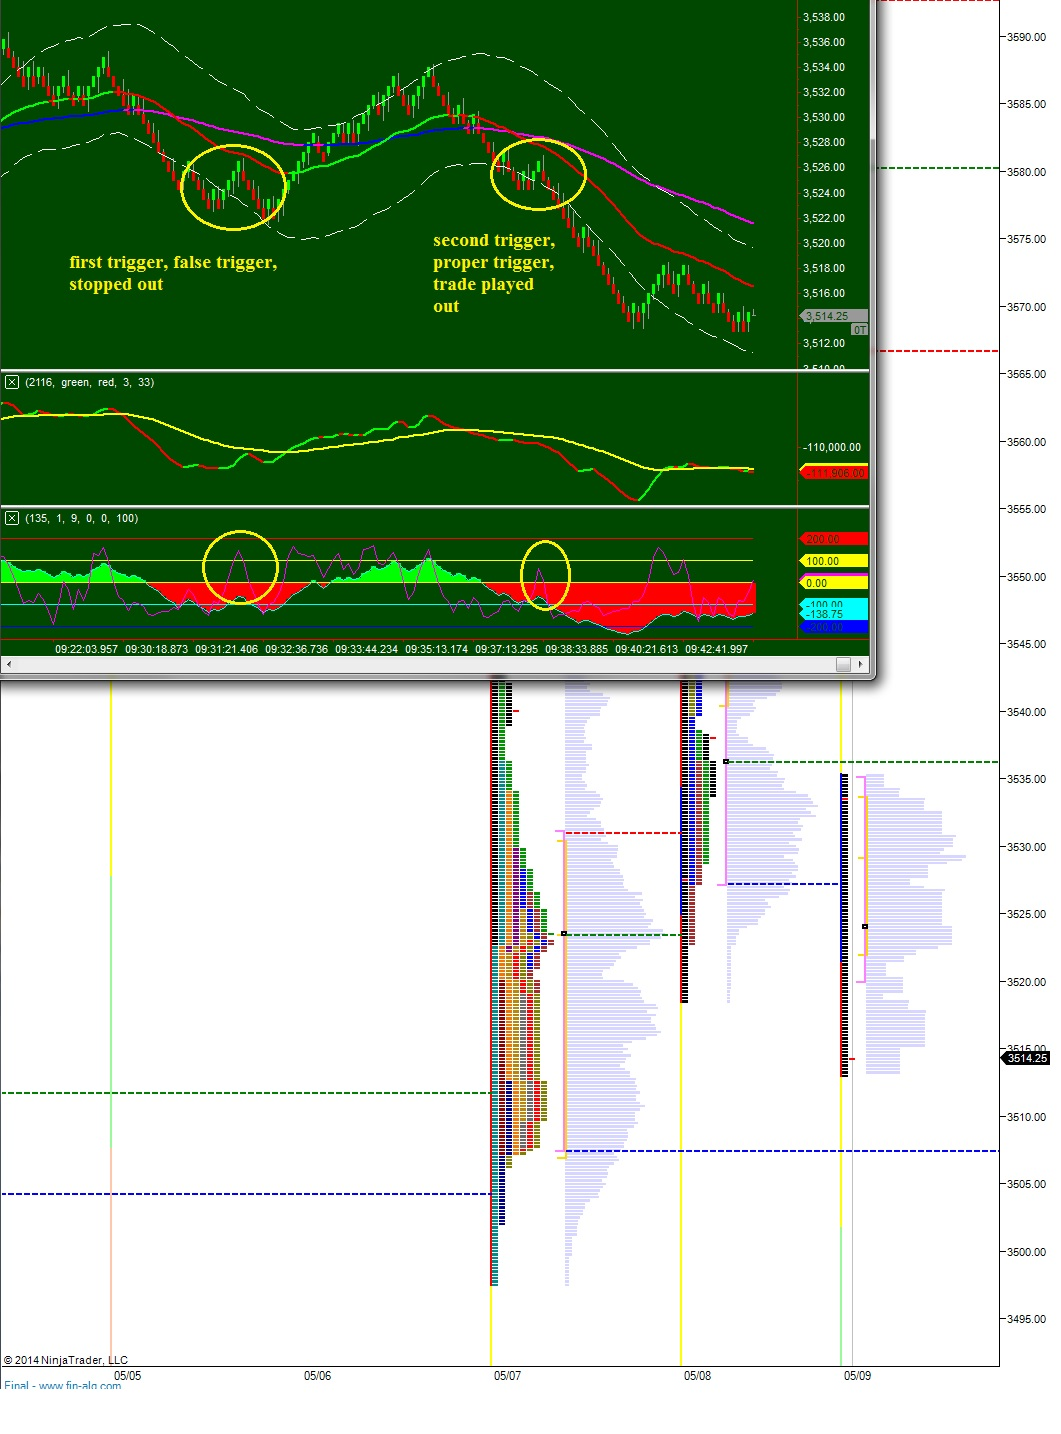 Intraday trading money management